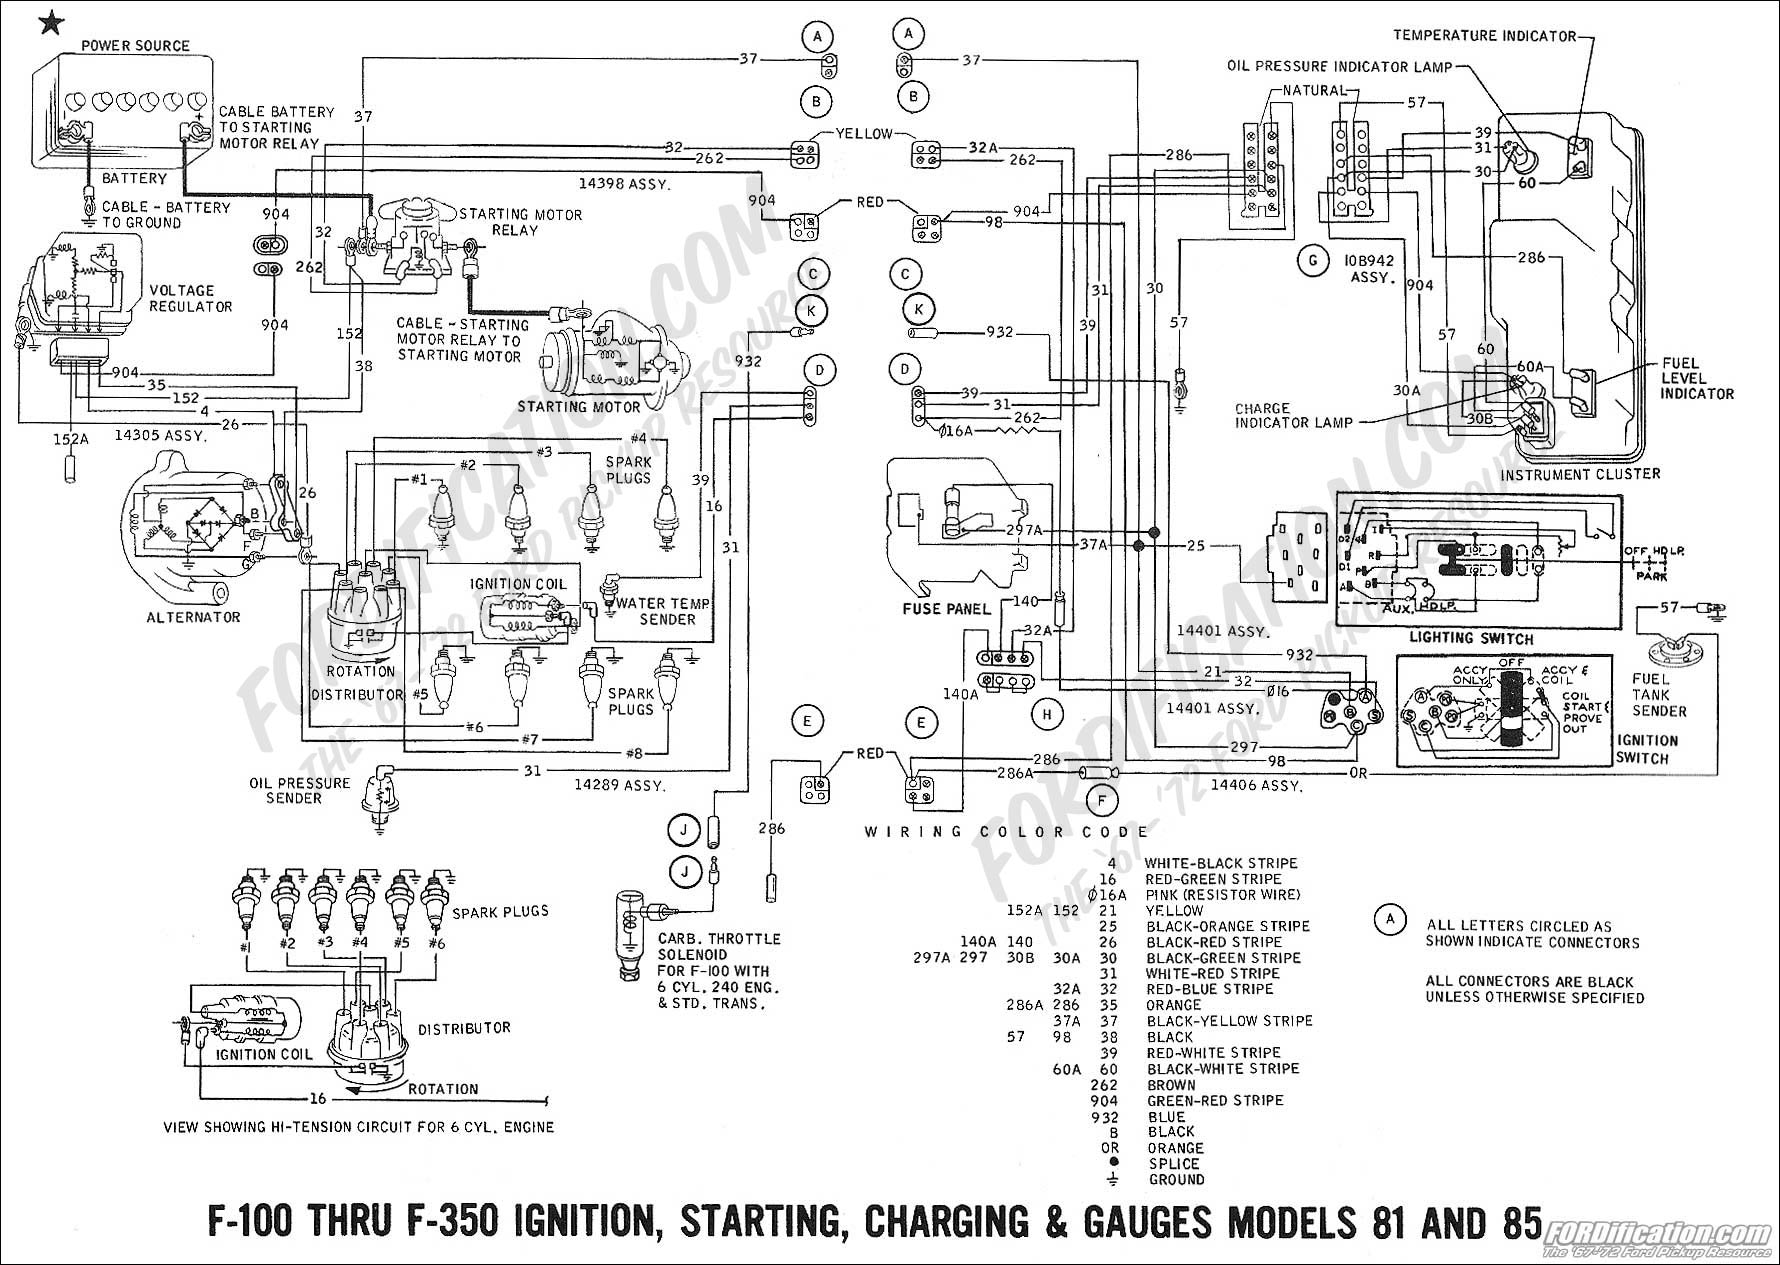 1985 Ford F 250 Diesel 4x4 Wiring Diagram Content Resource Of 1985 Ford F-250  4x4 1985 Ford F 250 Wiring Diagram